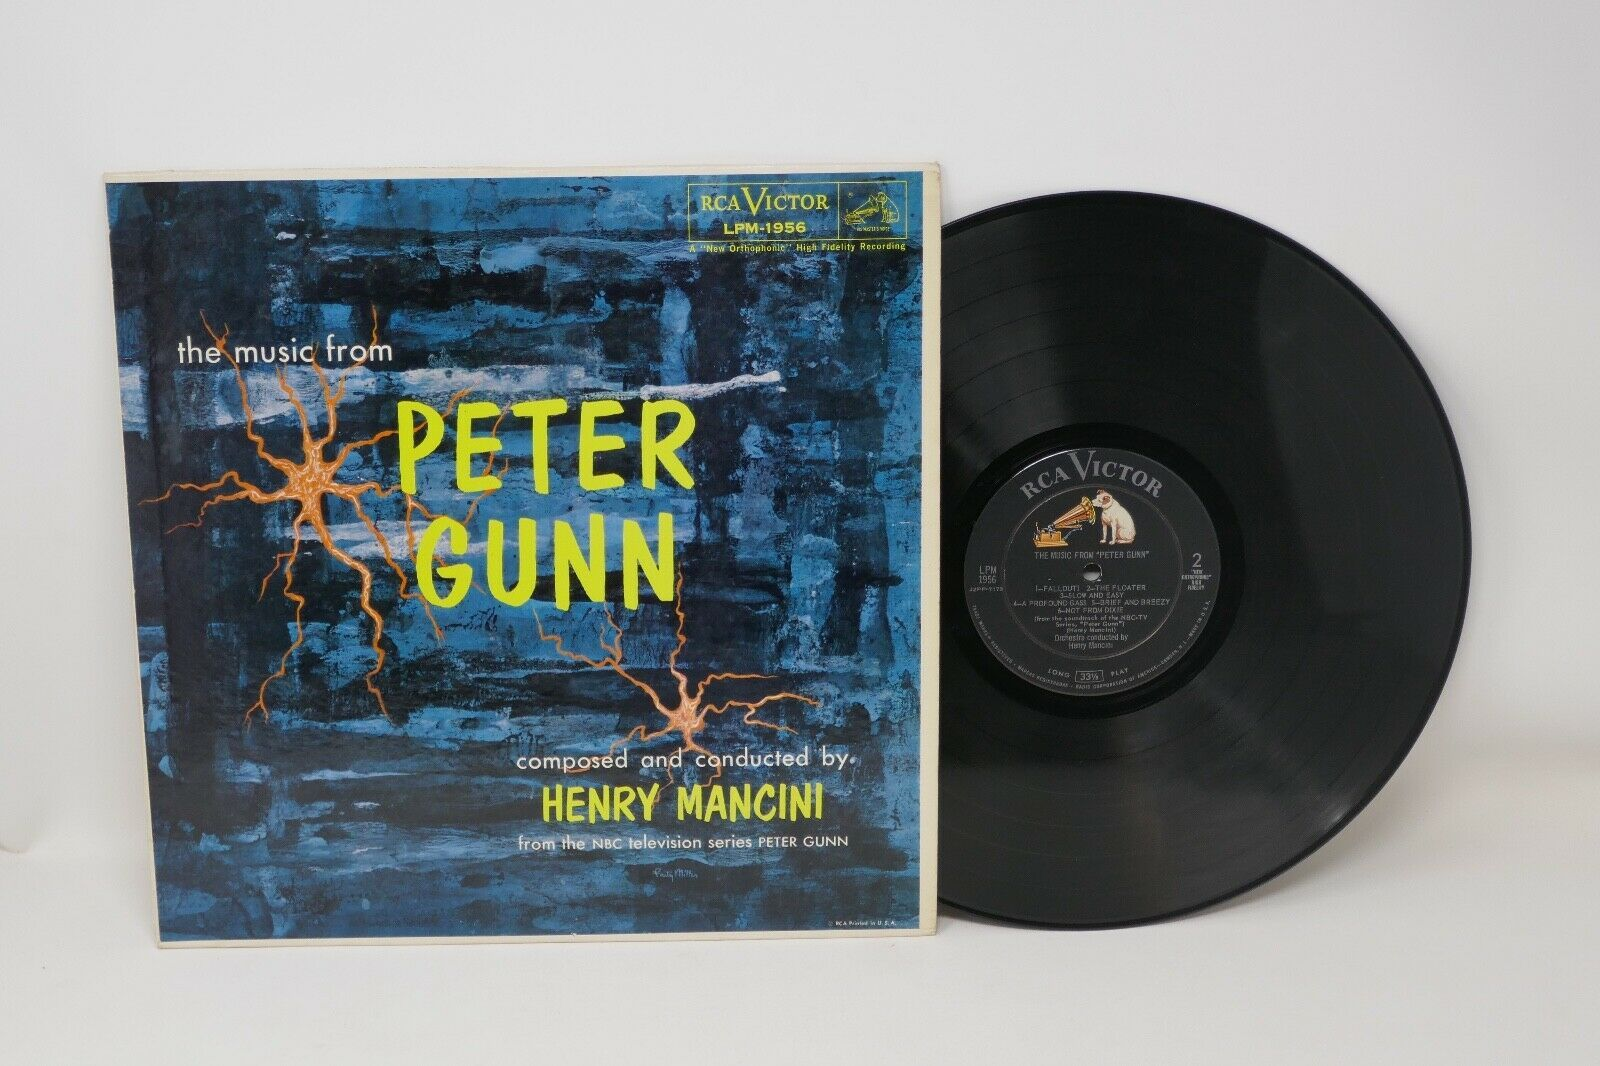 "RCA The Music From Peter Gunn by Henry Mancini 12"" LP Vinyl Record"